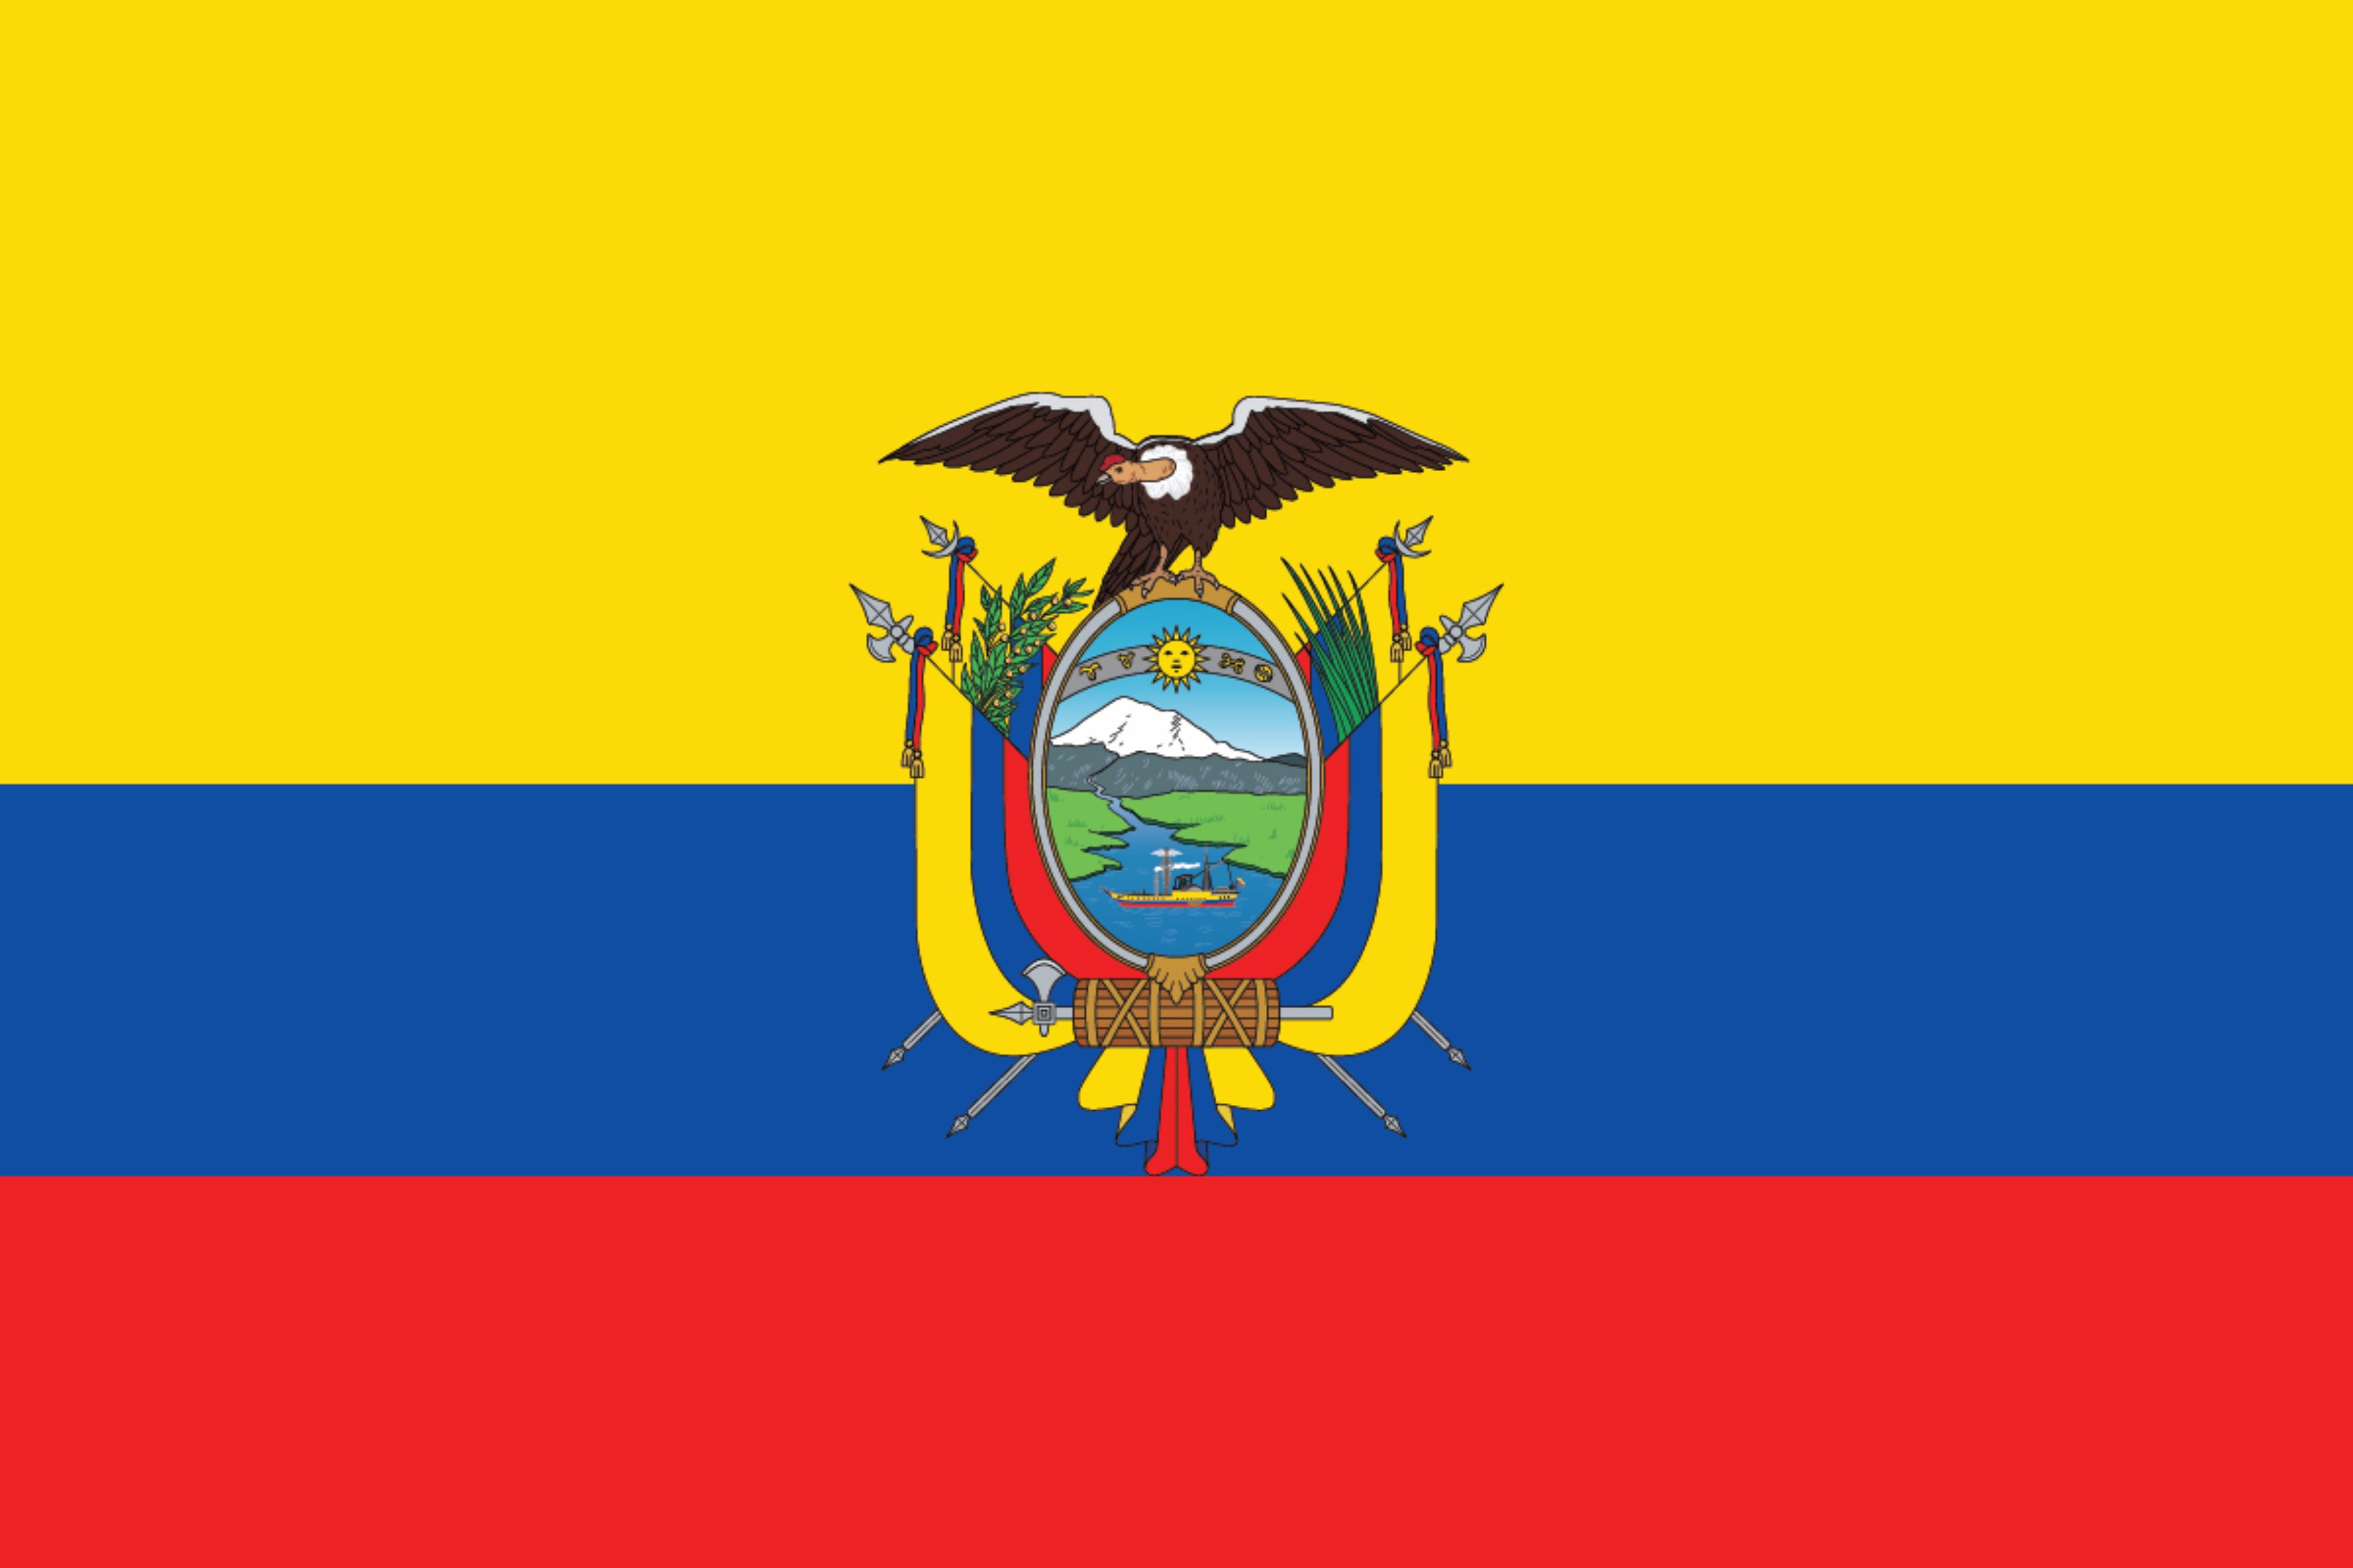 The National Flag of Ecuador features three horizontal bands of yellow (top, double-width), blue, and red; with the coat of arms superimposed at the center of the flag.